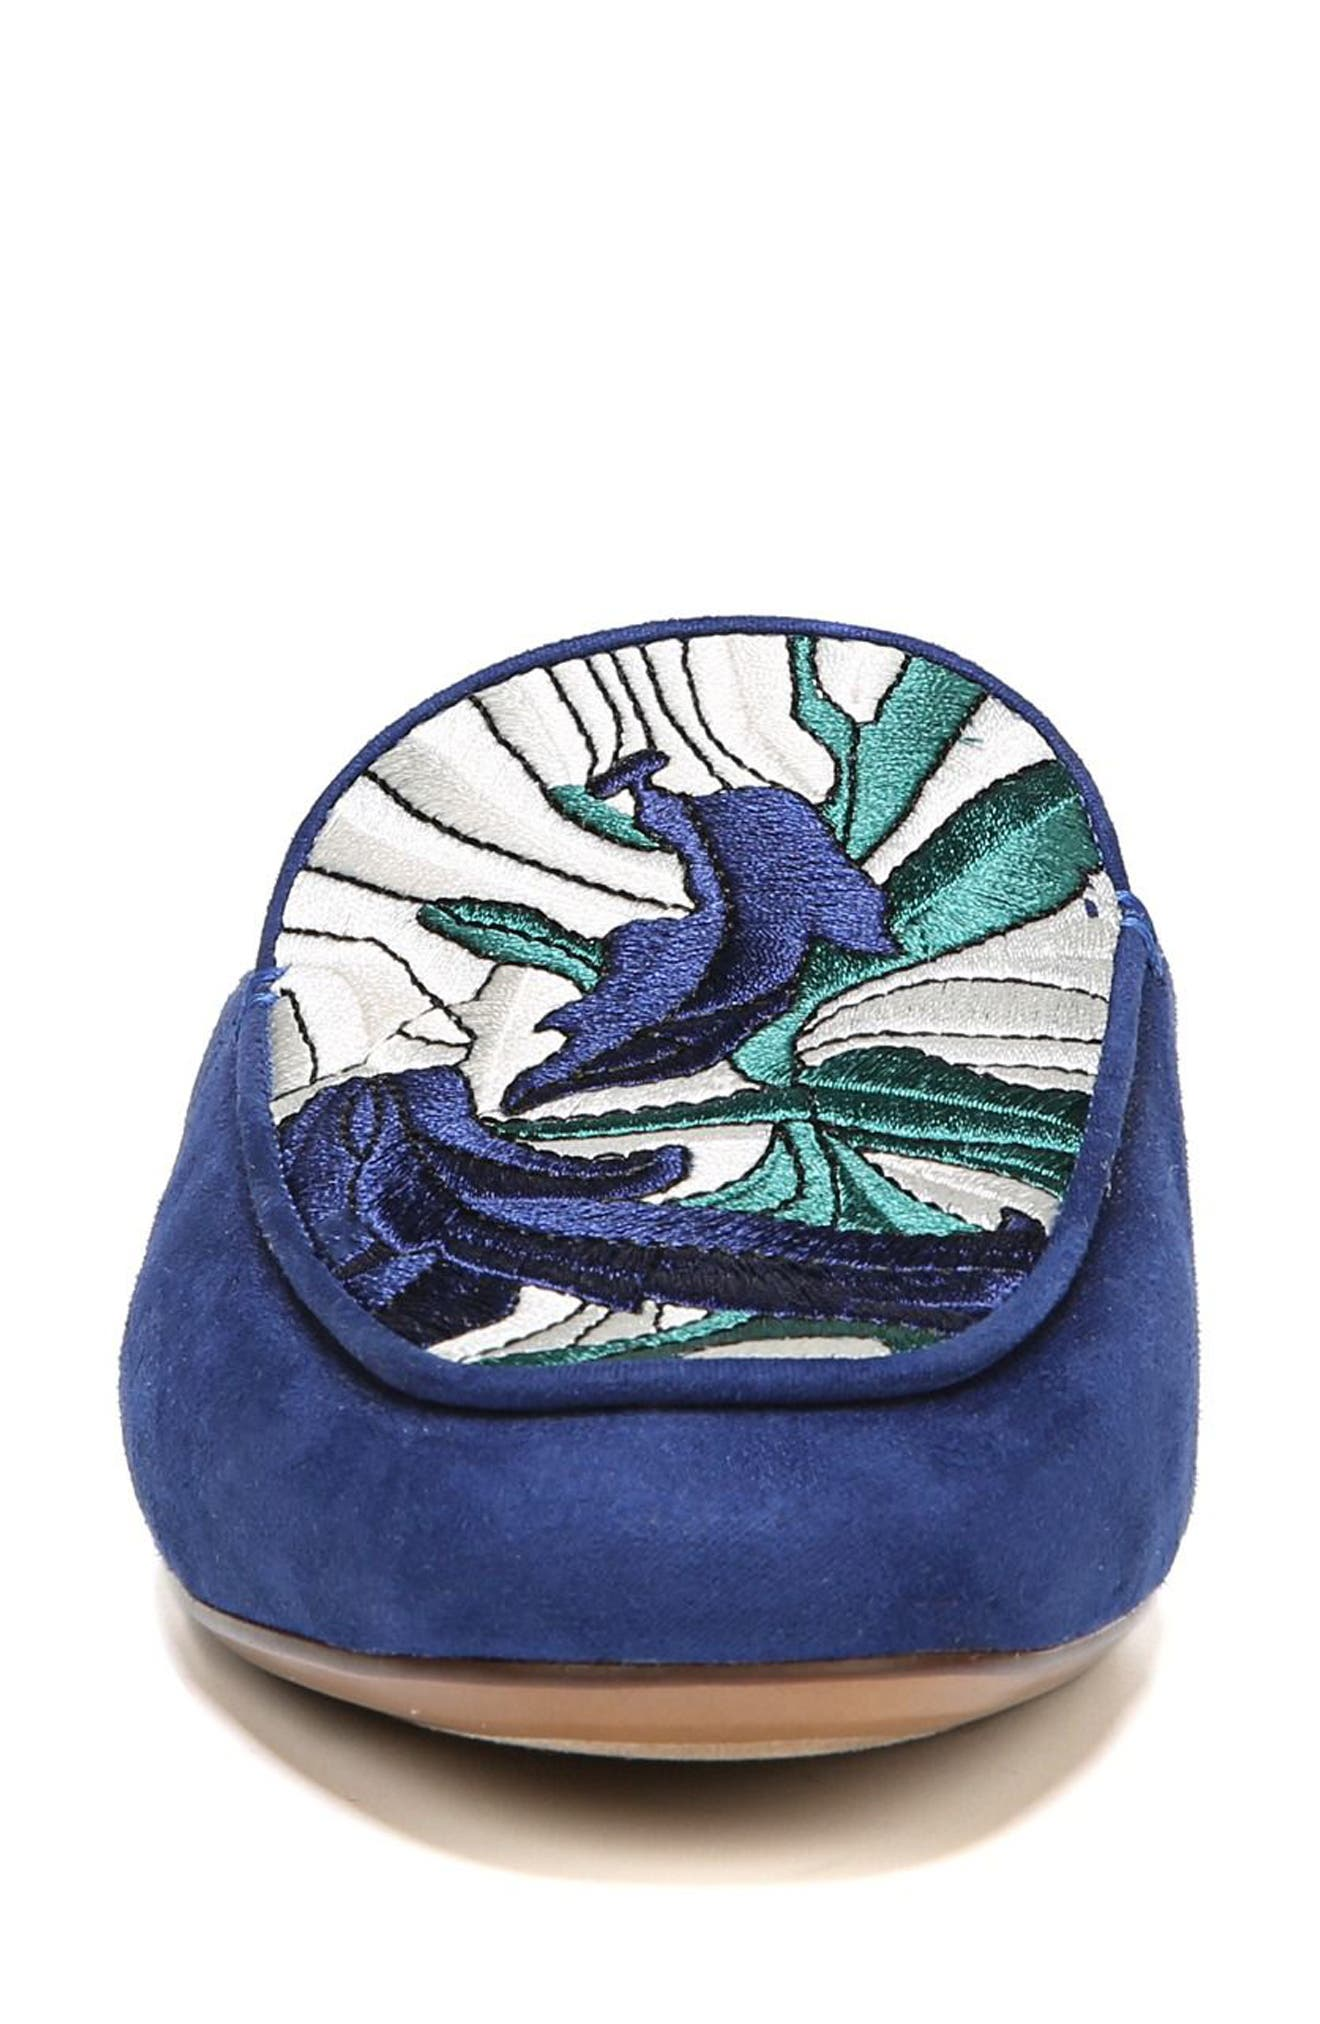 NATURALIZER,                             Eden II Embroidered Mule,                             Alternate thumbnail 4, color,                             SAPPHIRE FABRIC